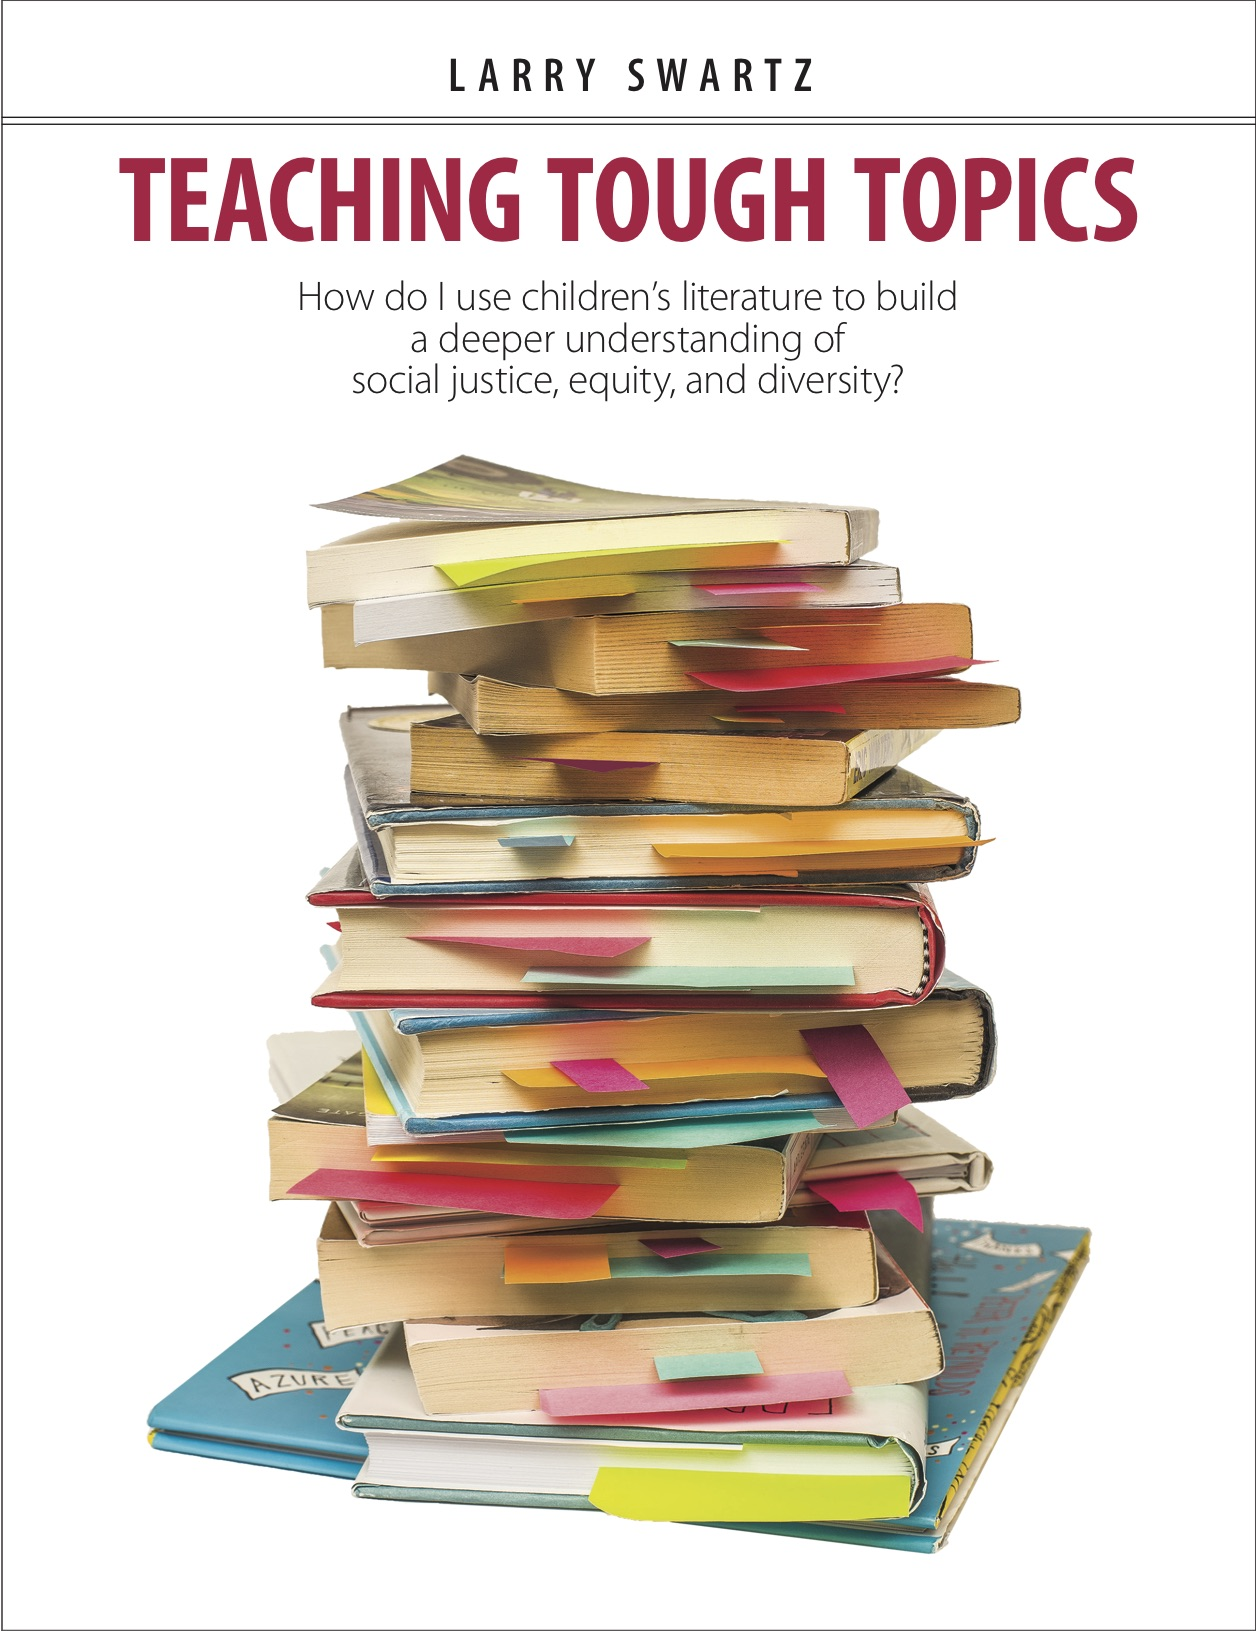 Teaching Tough Topics: How do I use children's literature to build a deeper understanding of social justice, equity, and diversity?